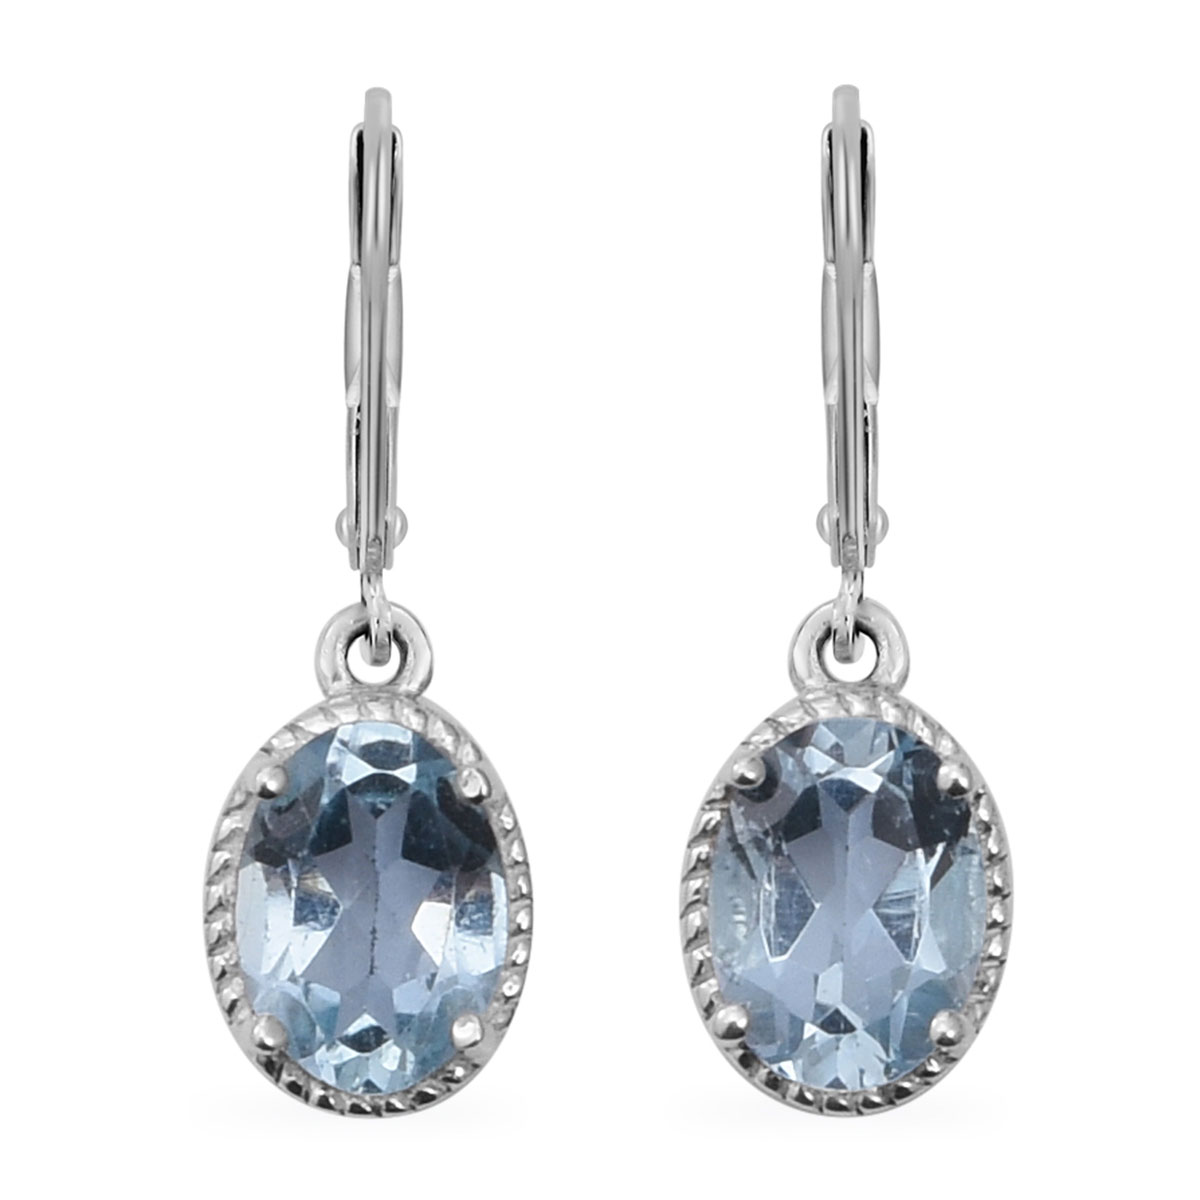 Lever Back Earrings 925 Sterling Silver Gift Jewelry for Women Ct 4